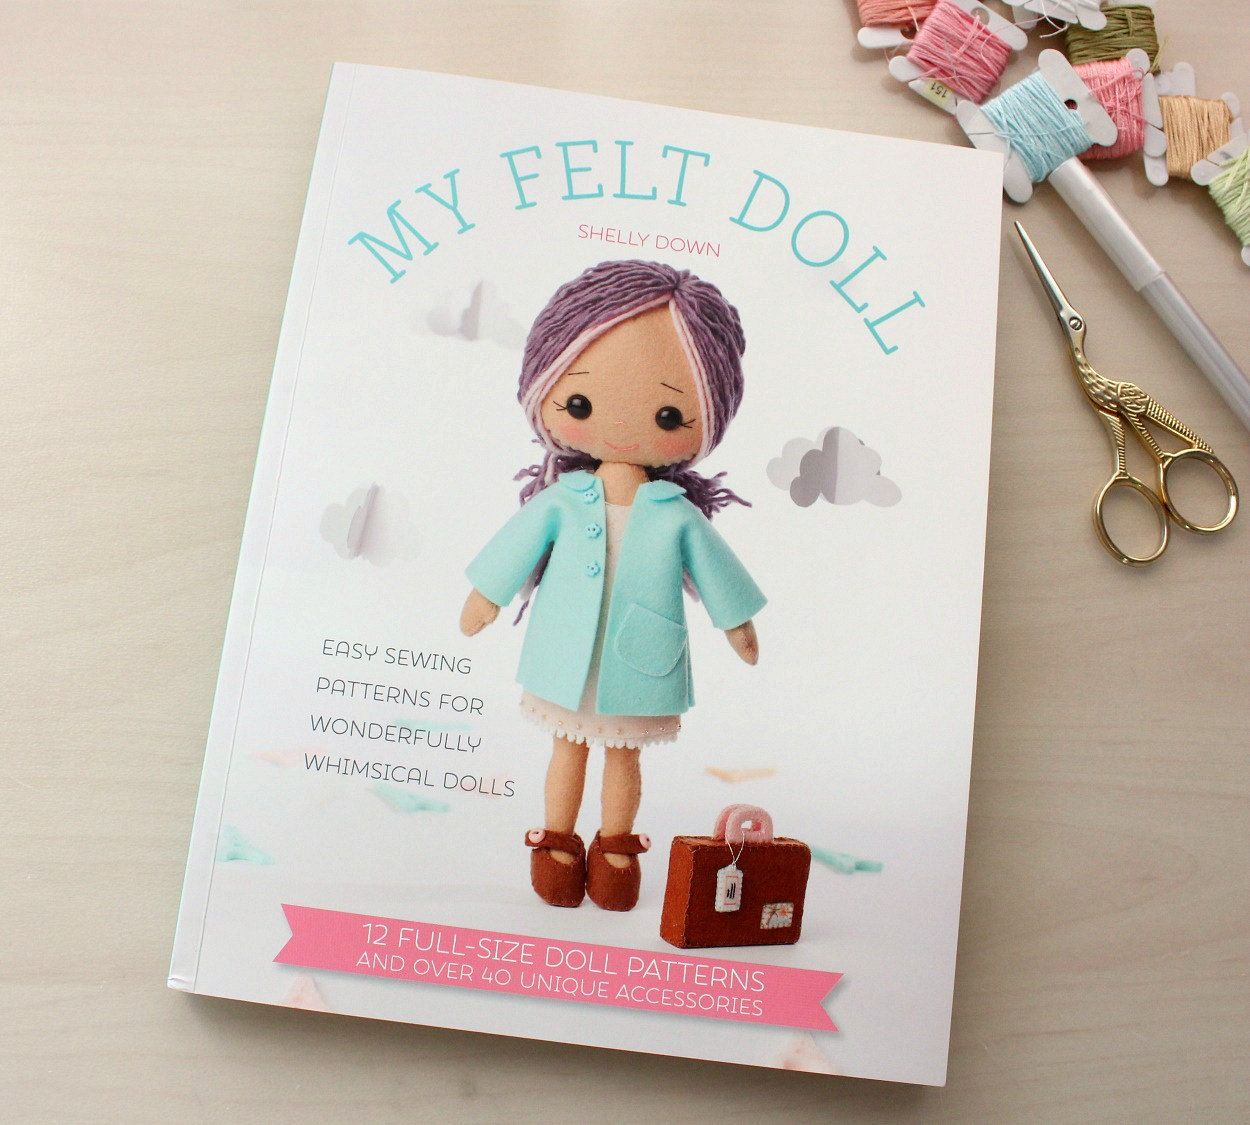 Books on felt crafts - Limited Stock My Felt Doll Craft Book